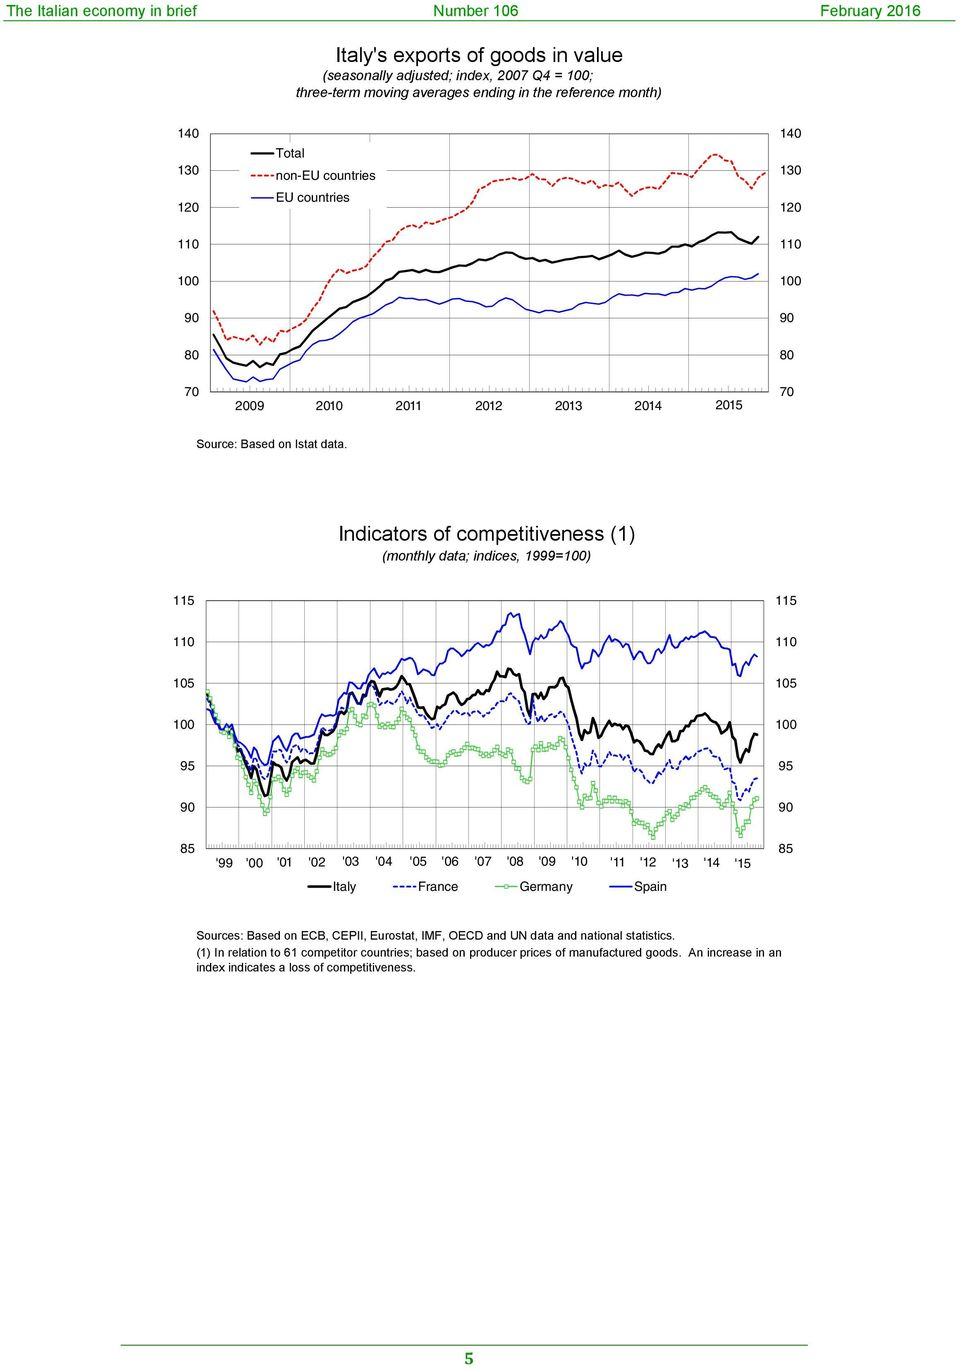 Indicators of competitiveness (1) (monthly data; indices, 1999=1) 11 11 11 11 1 1 1 1 9 9 9 9 8 '99 ' '1 '2 ' '4 ' '6 '7 '8 '9 '1 '11 '12 '1 '14 '1 Italy France Germany Spain 8